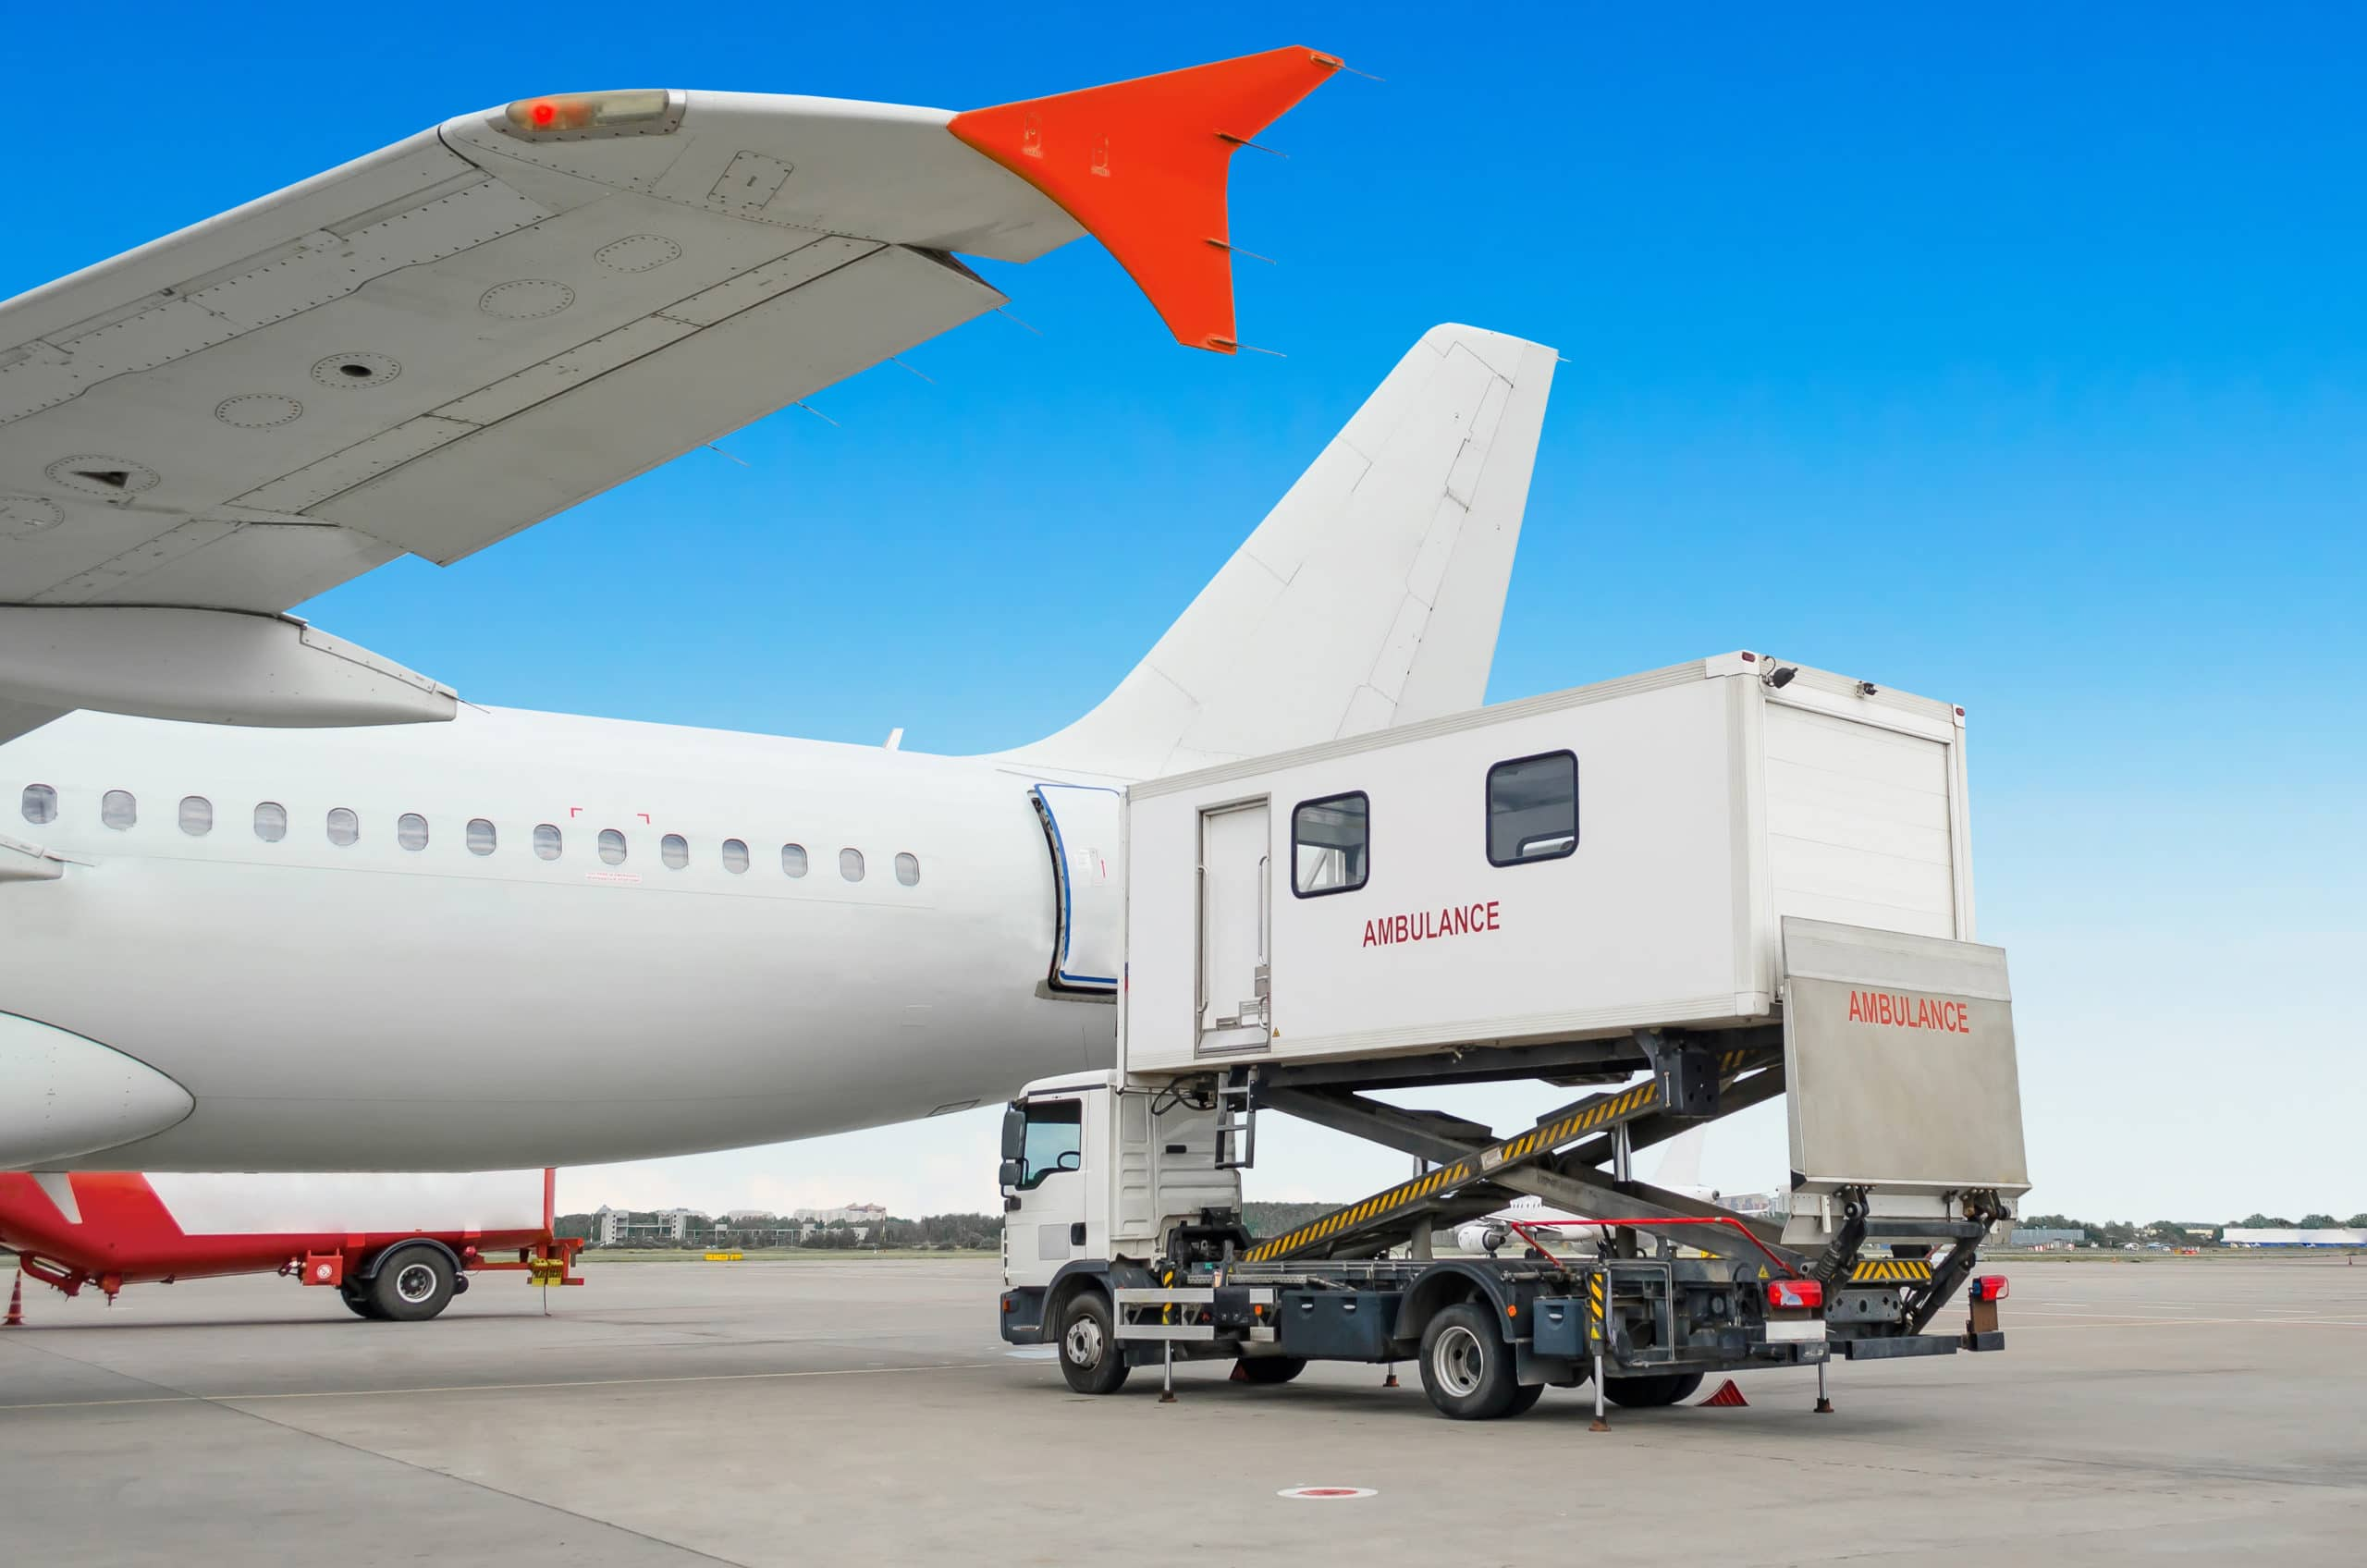 Medical Escort Services on airlines